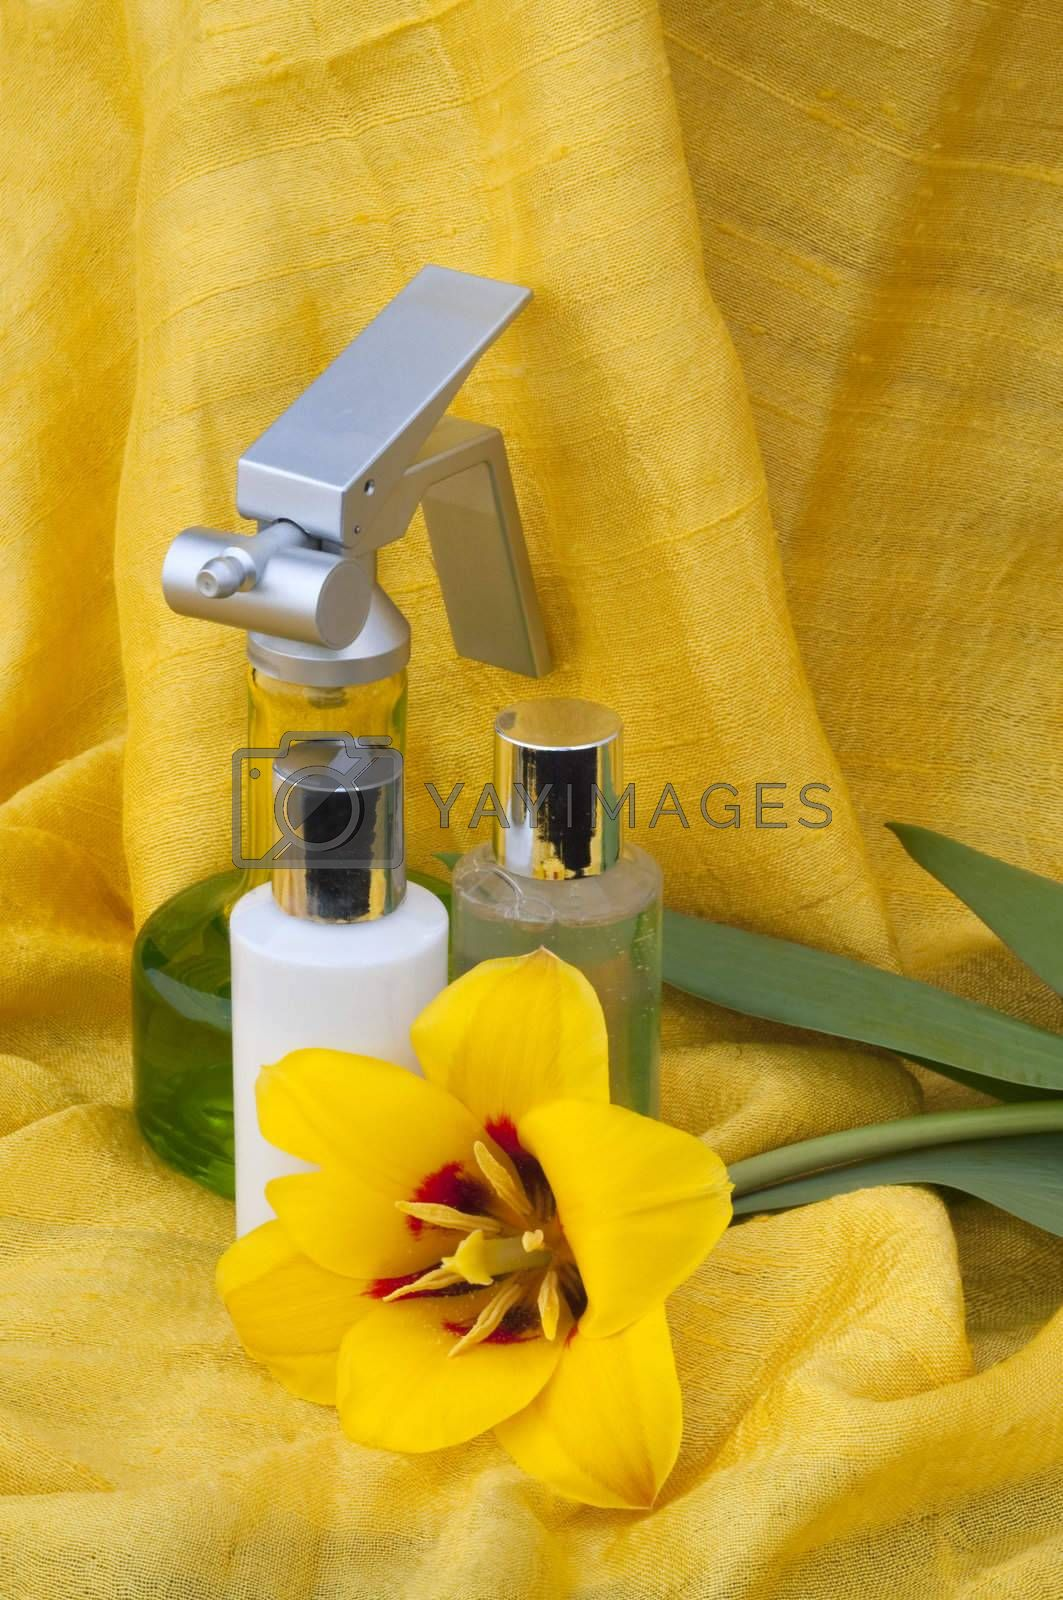 range of creams and accessories for personal care